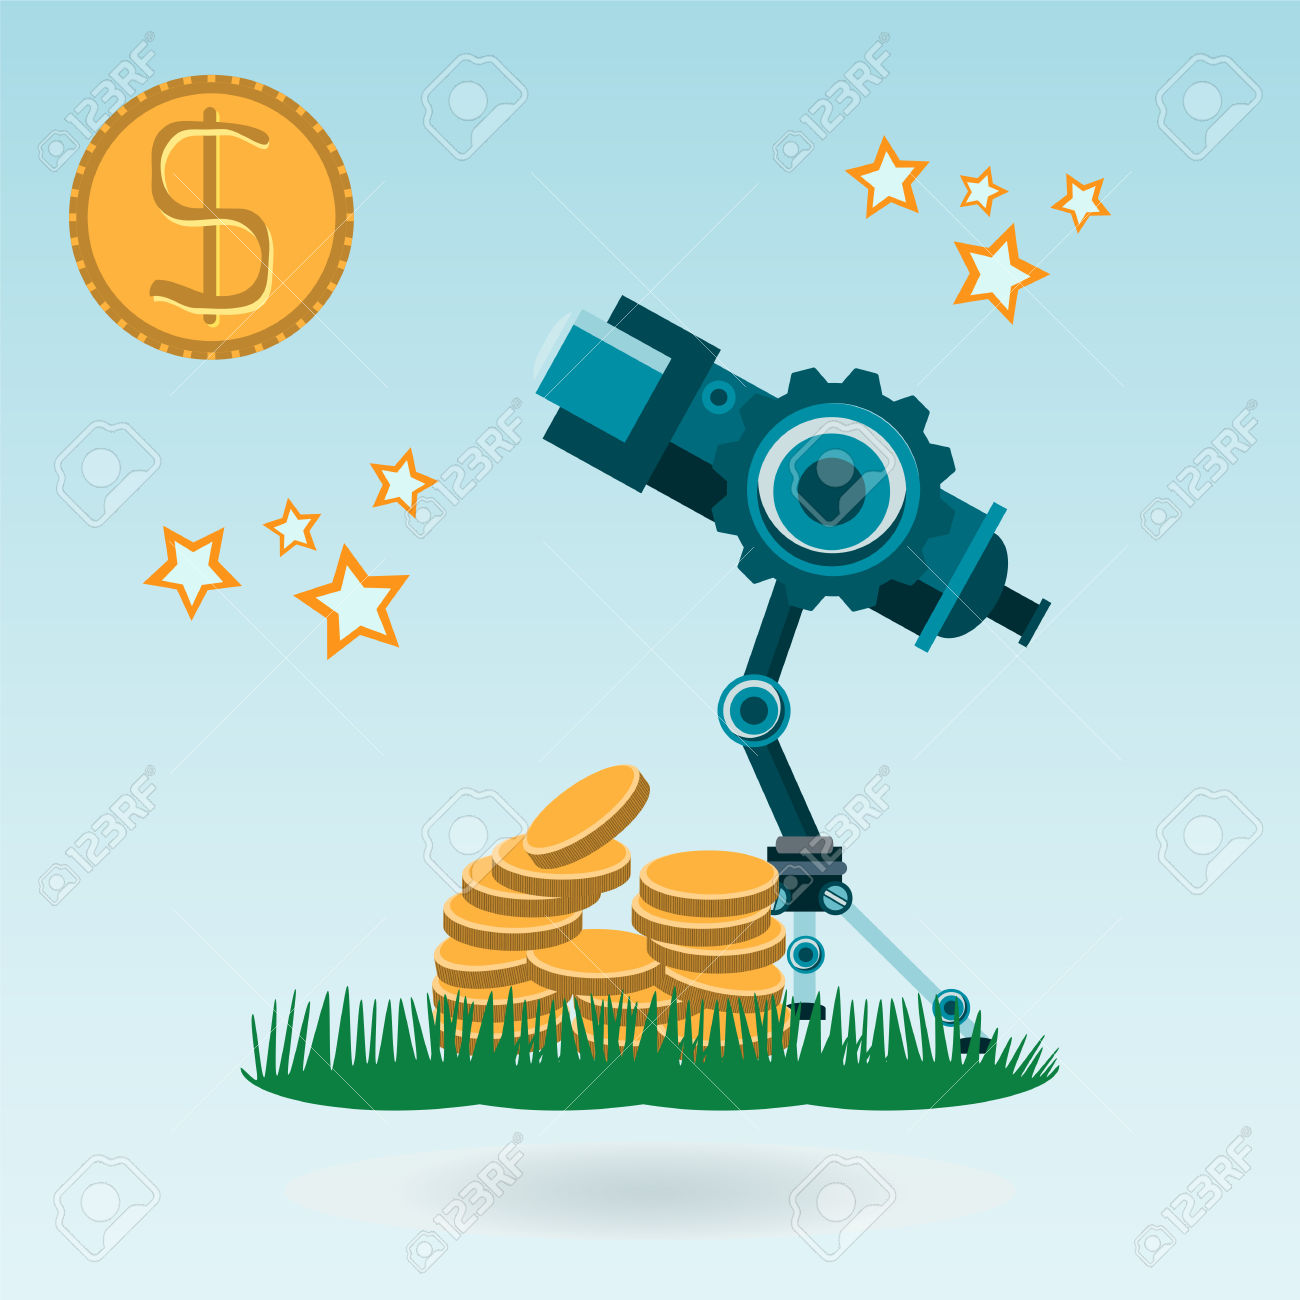 Coins telescope clipart #13